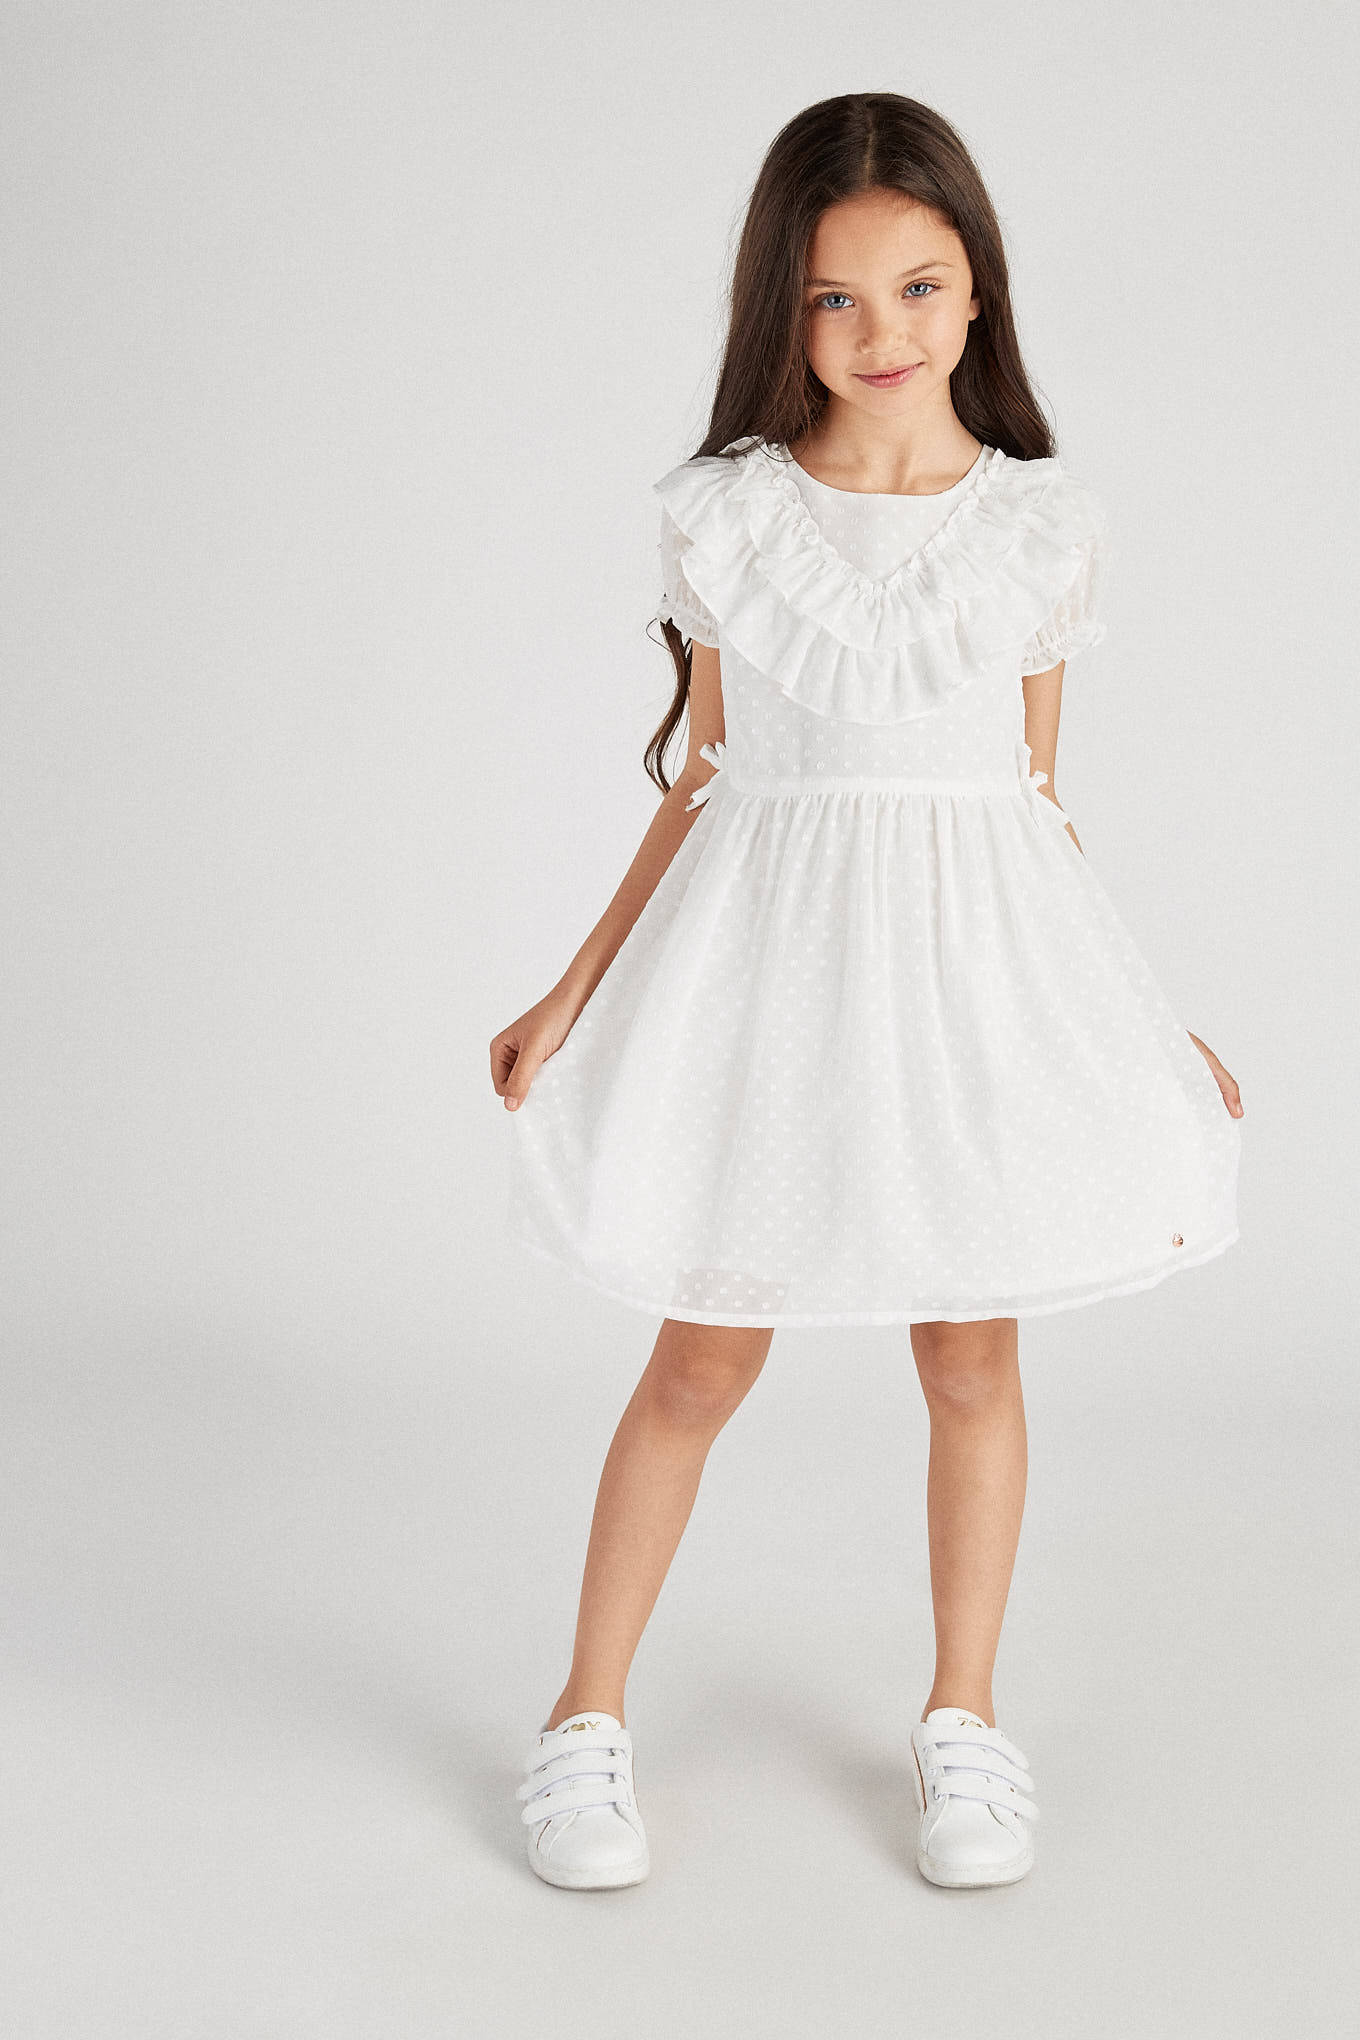 Dress White Fantasy Girl